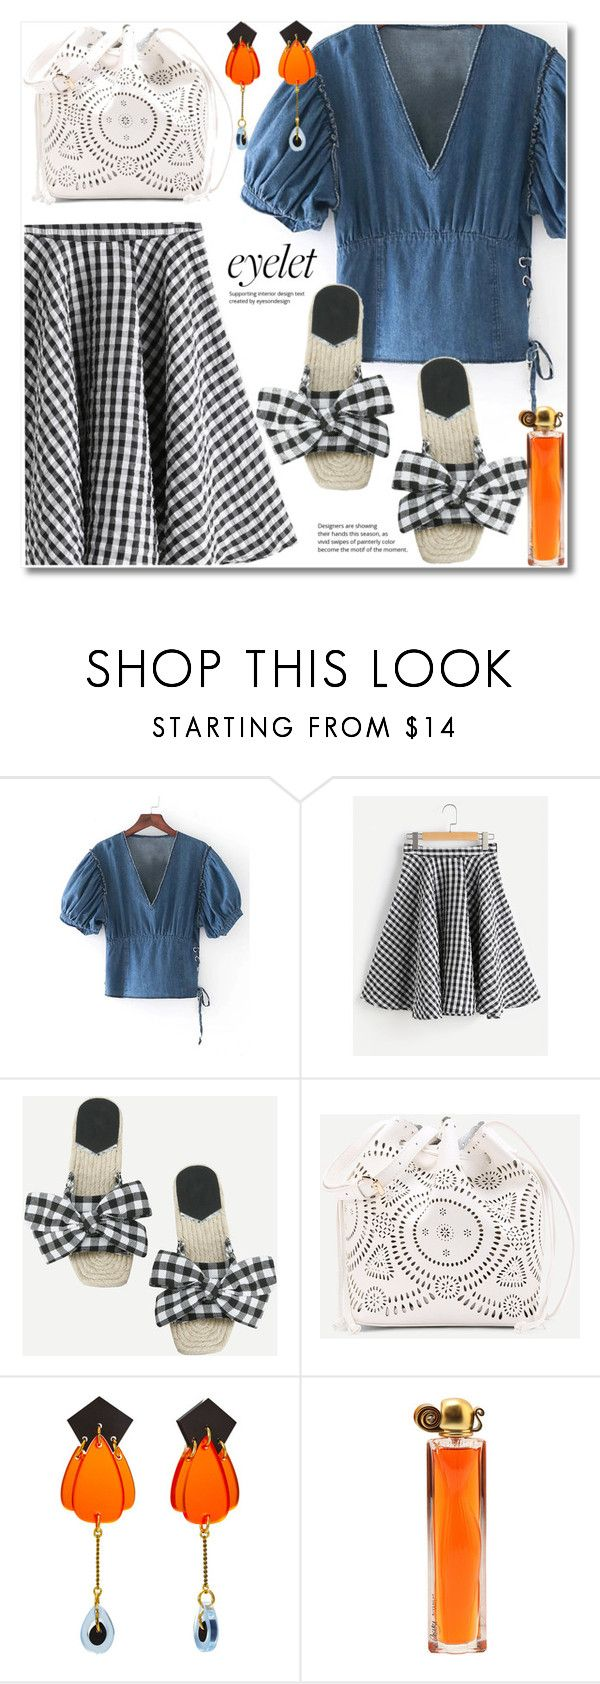 """""""Peek-A-Boo: Eyelet"""" by svijetlana ❤ liked on Polyvore featuring Givenchy, eyelet and shein"""